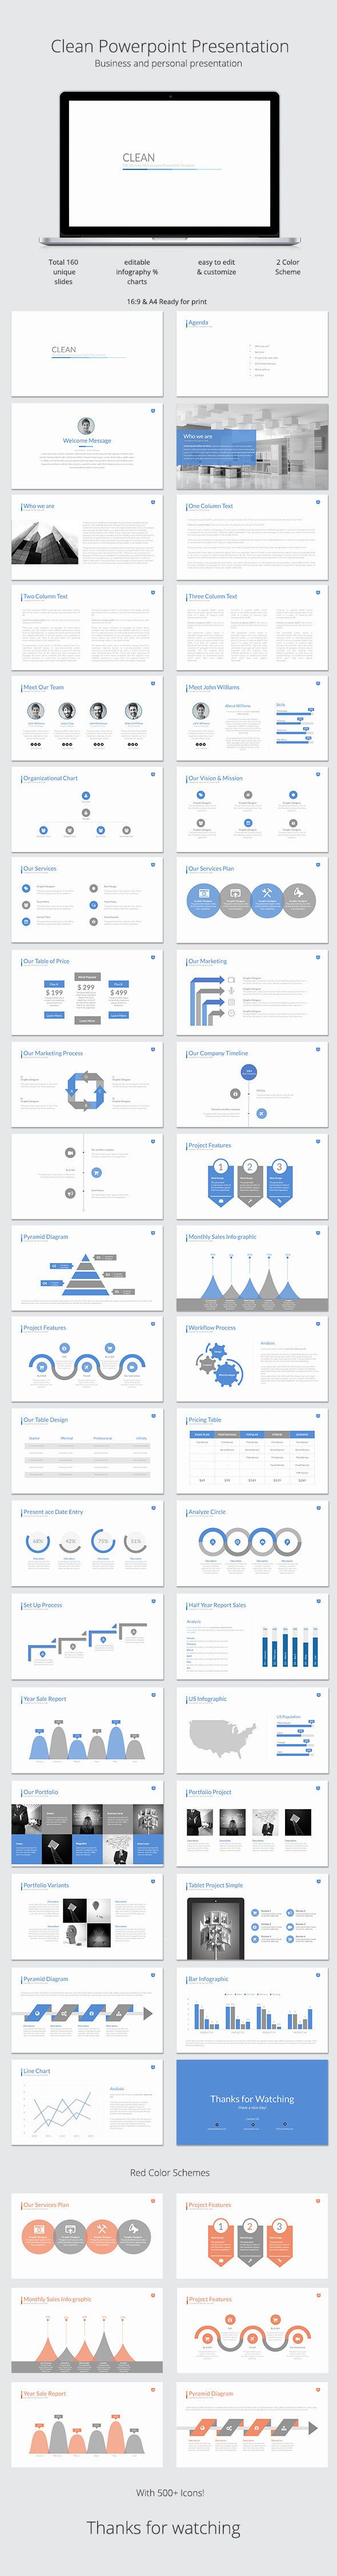 clean powerpoint template